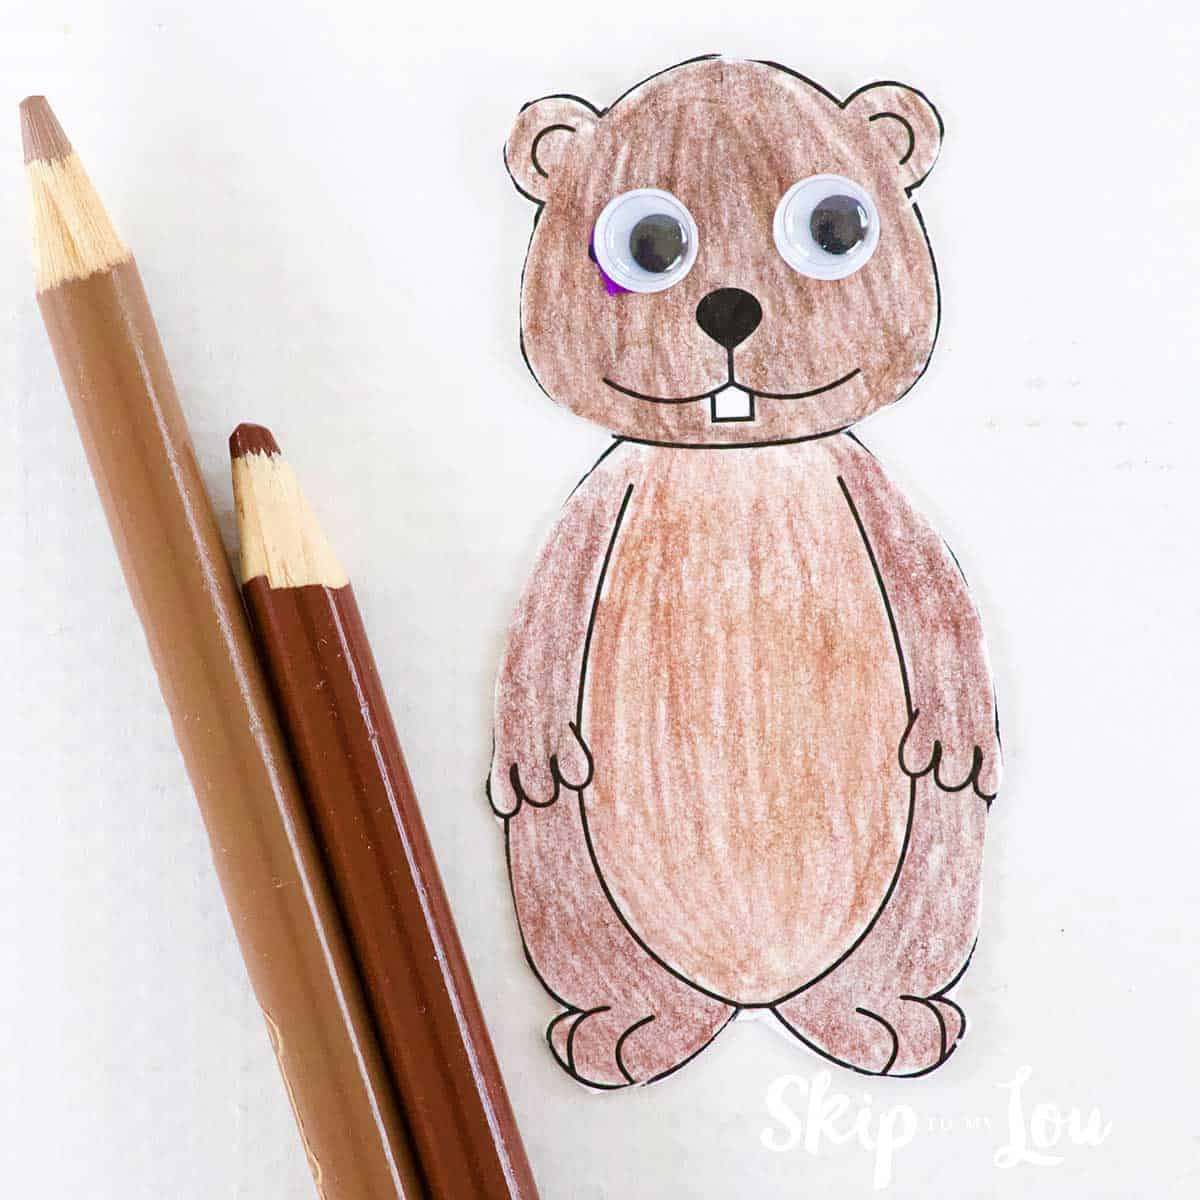 colored groundhog colored pencils